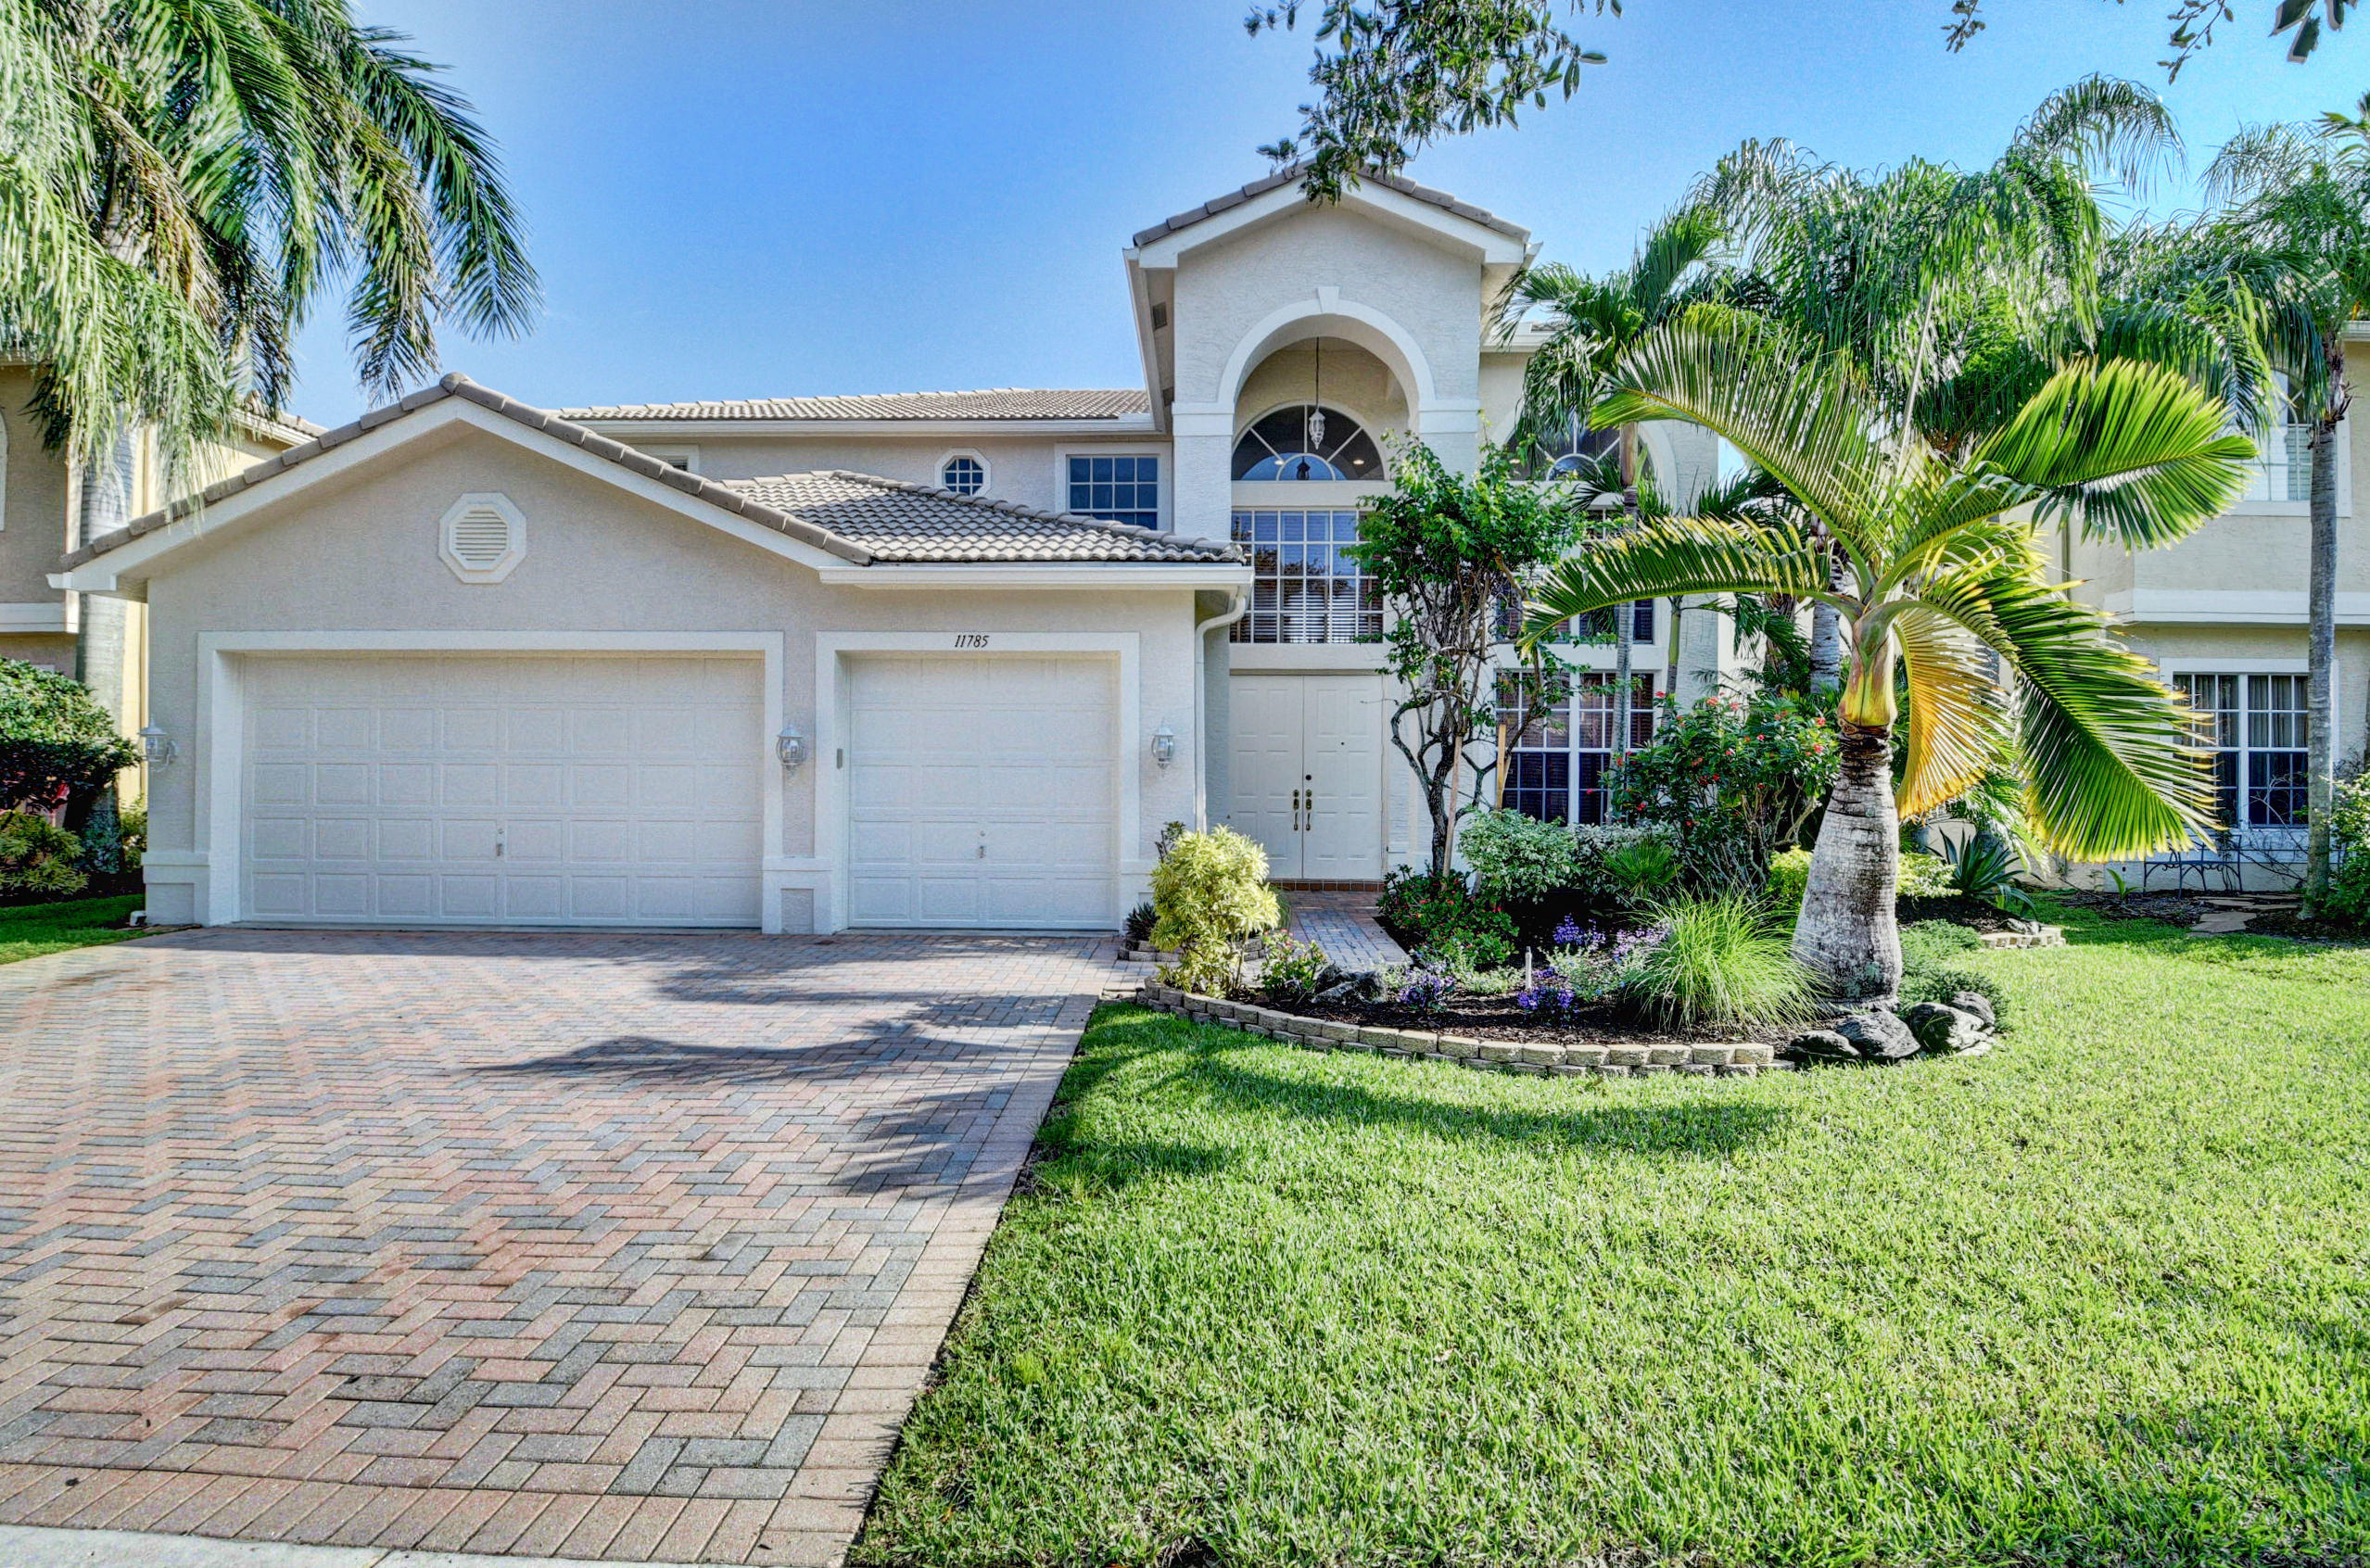 Photo of 11785 Preservation Lane, Boca Raton, FL 33498